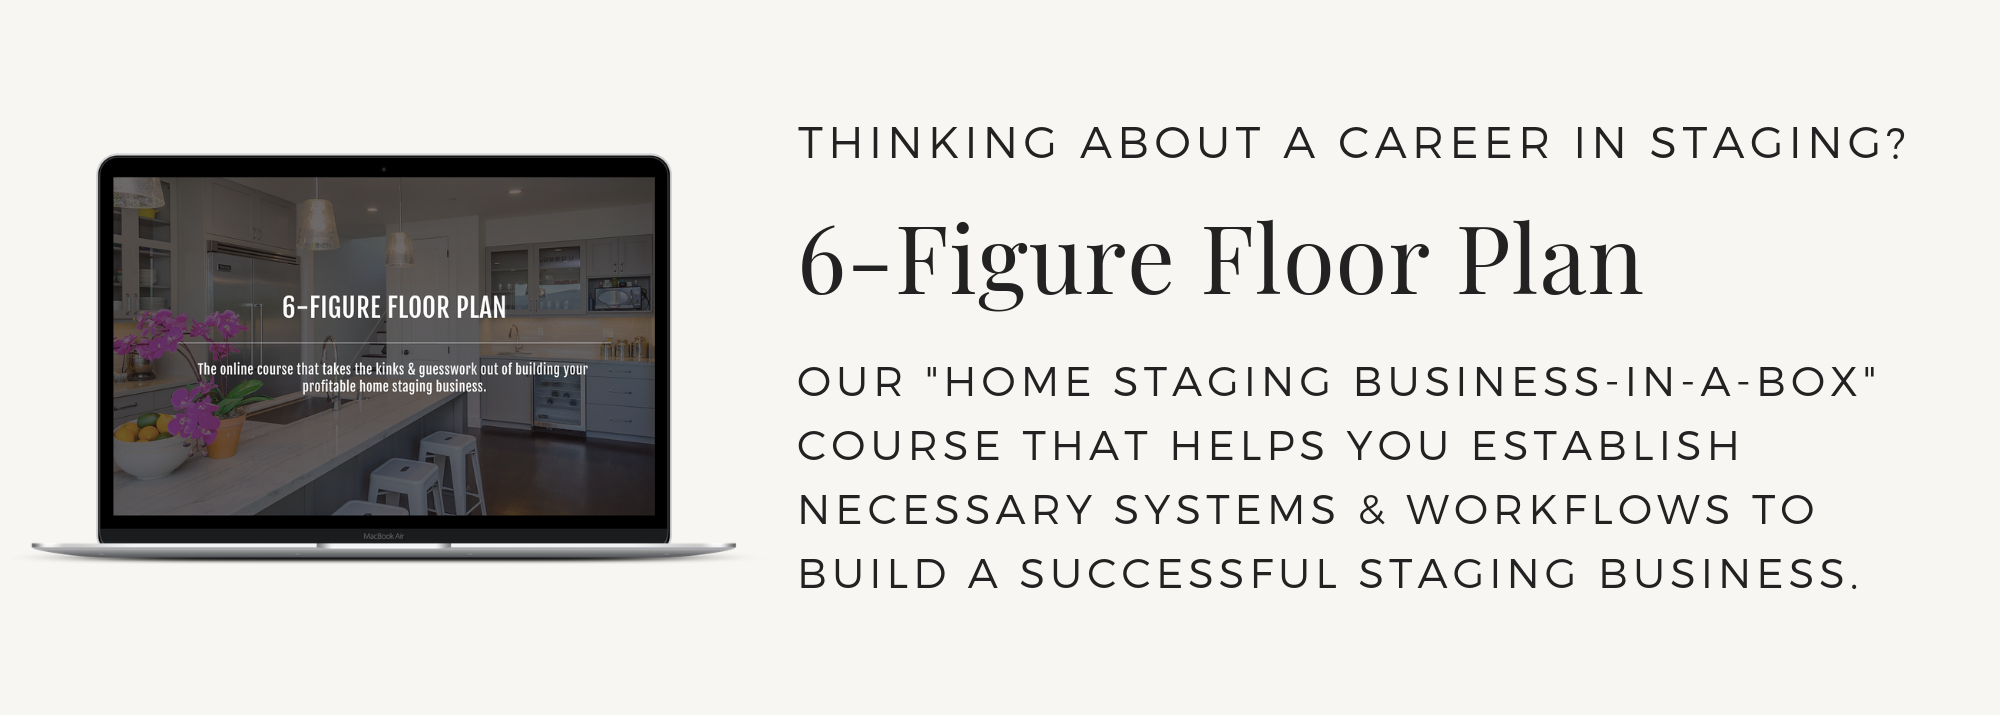 6-Figure Floor Plan Home Staging Business Training Course